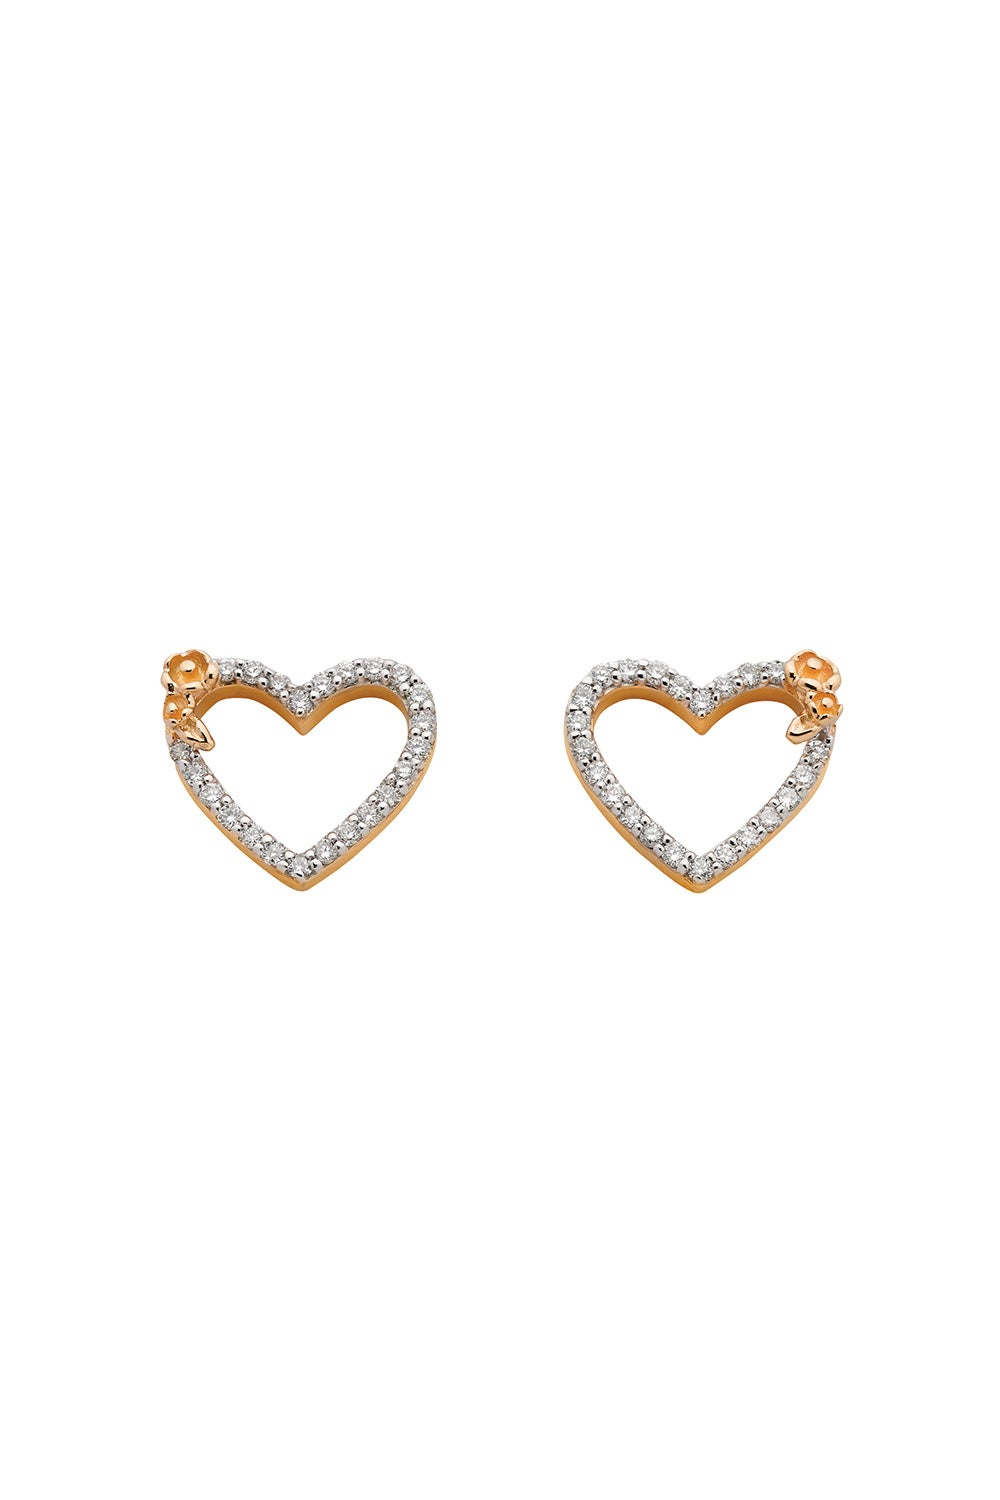 Diamond Botanical Heart Studs Gold, .38ct Diamond